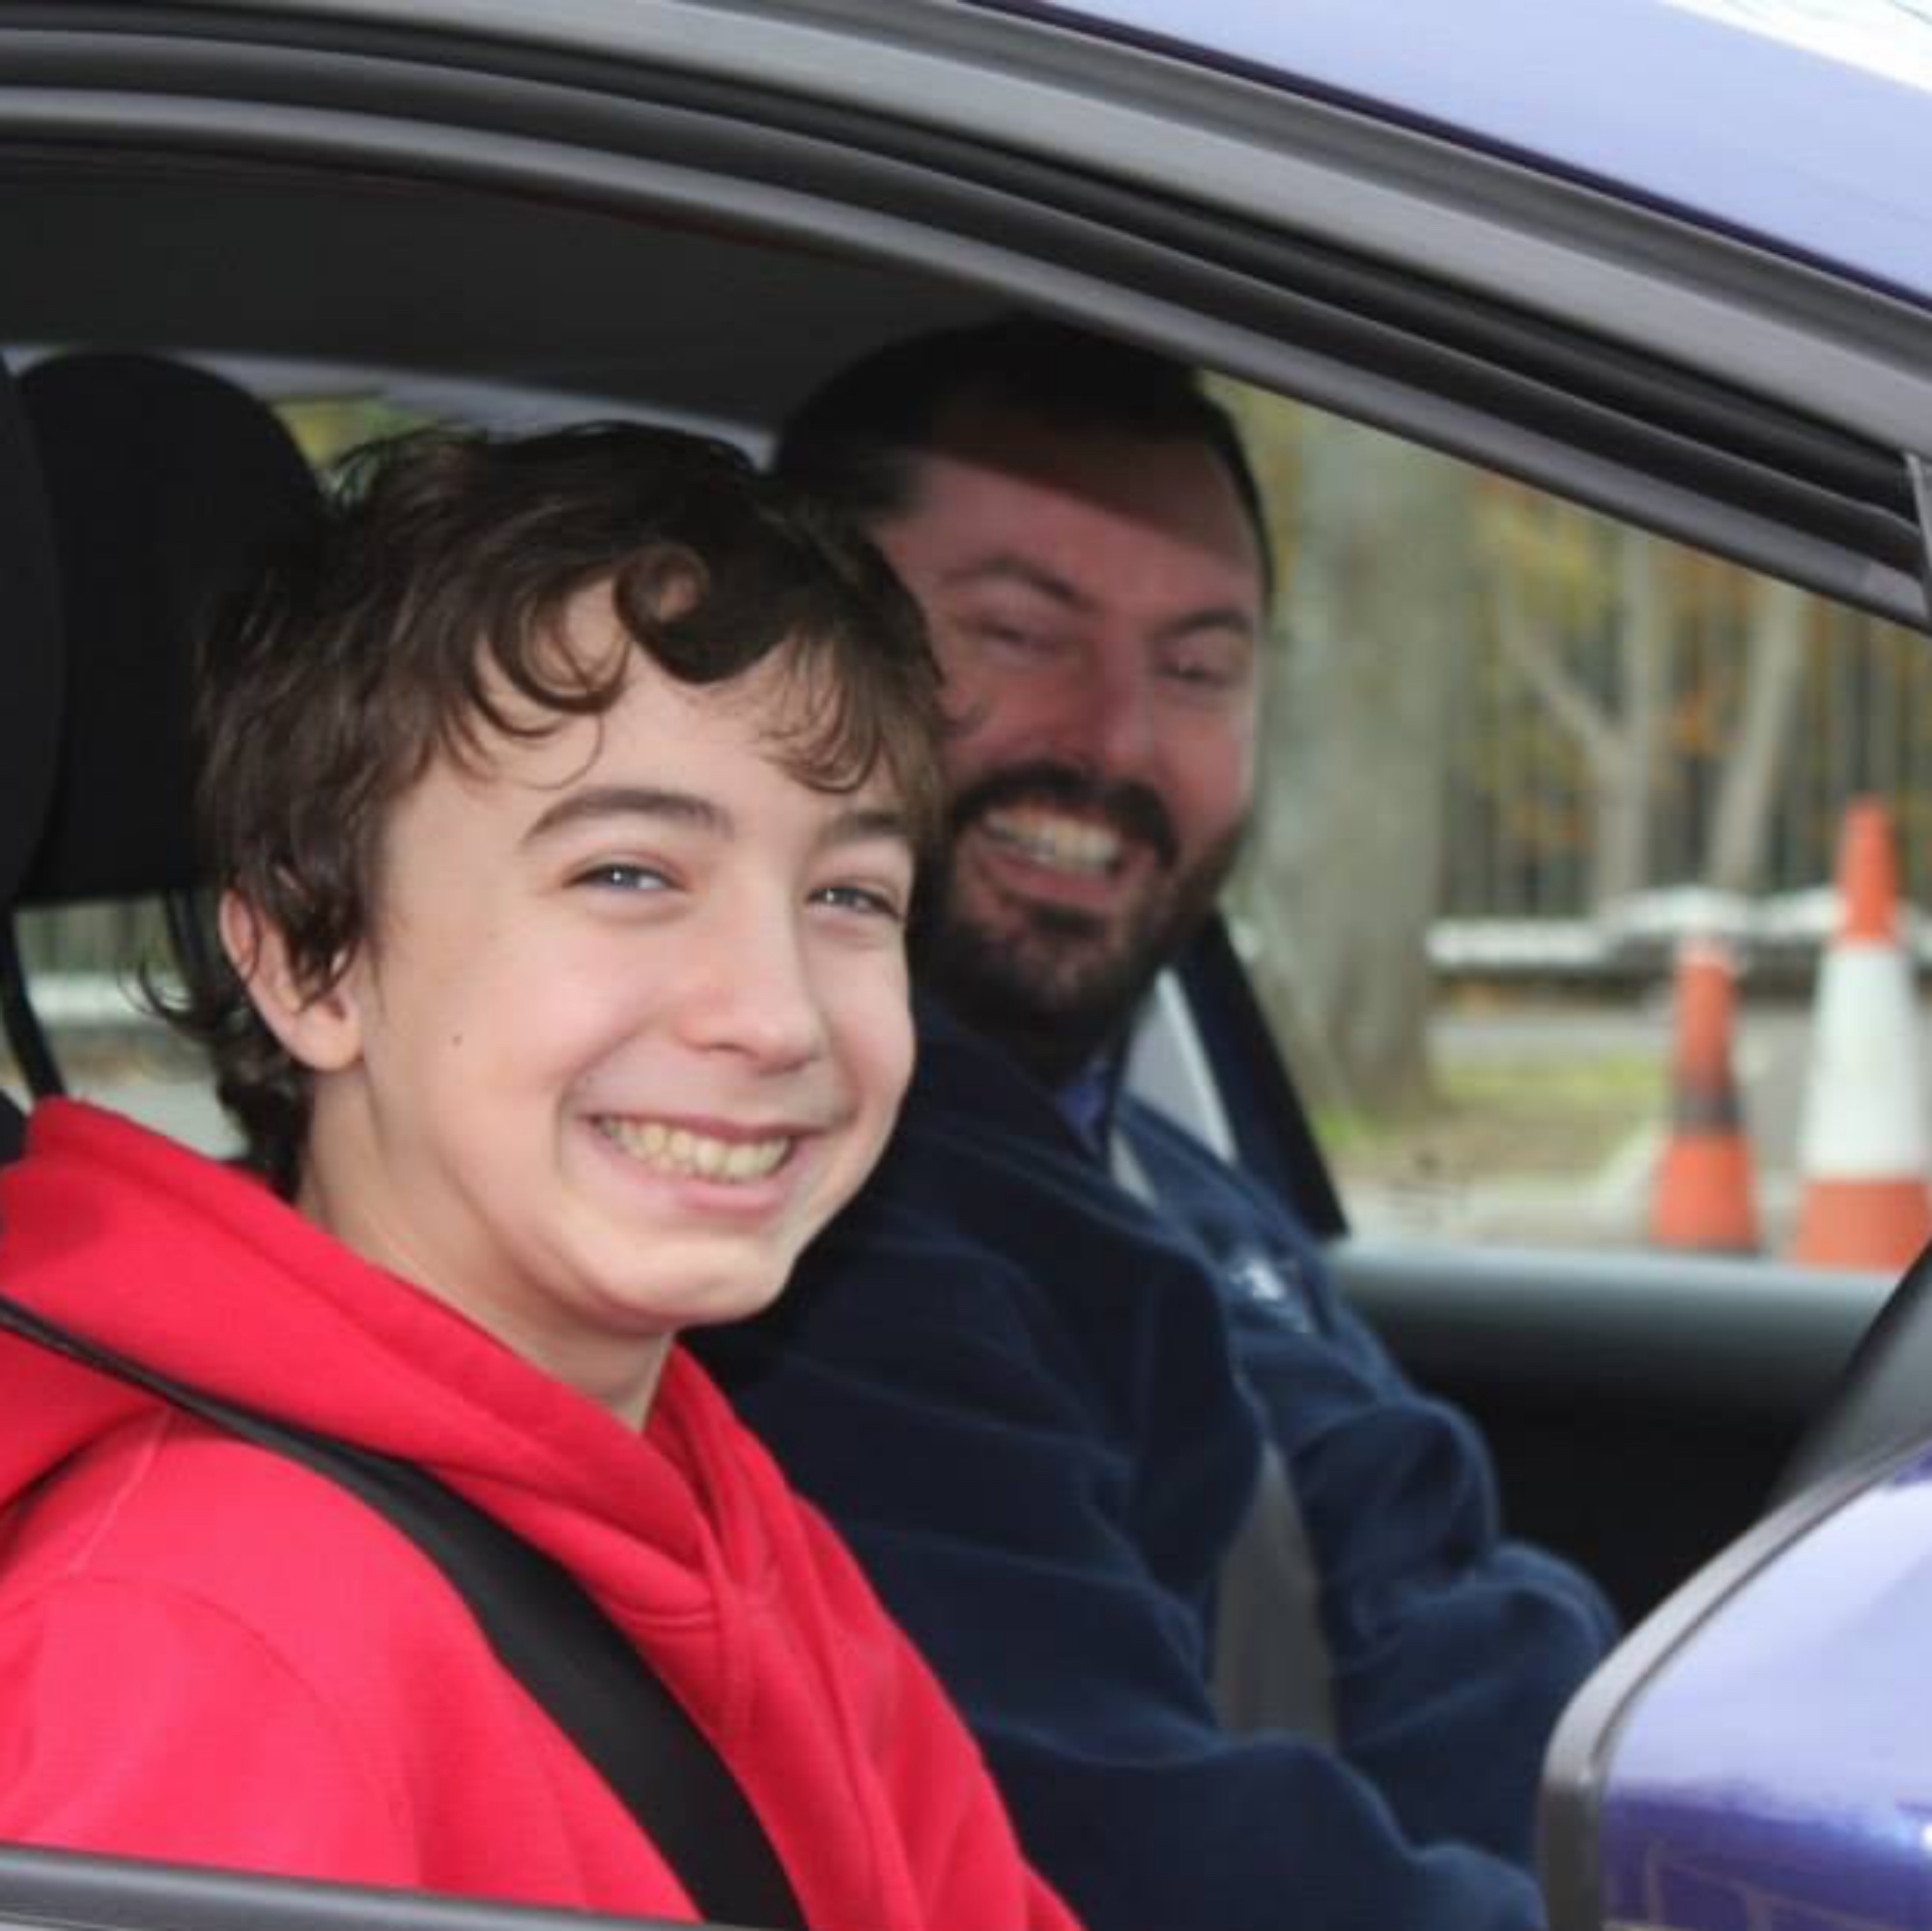 Develop driving skills at 11, 12, 13, 14, 15, 16+